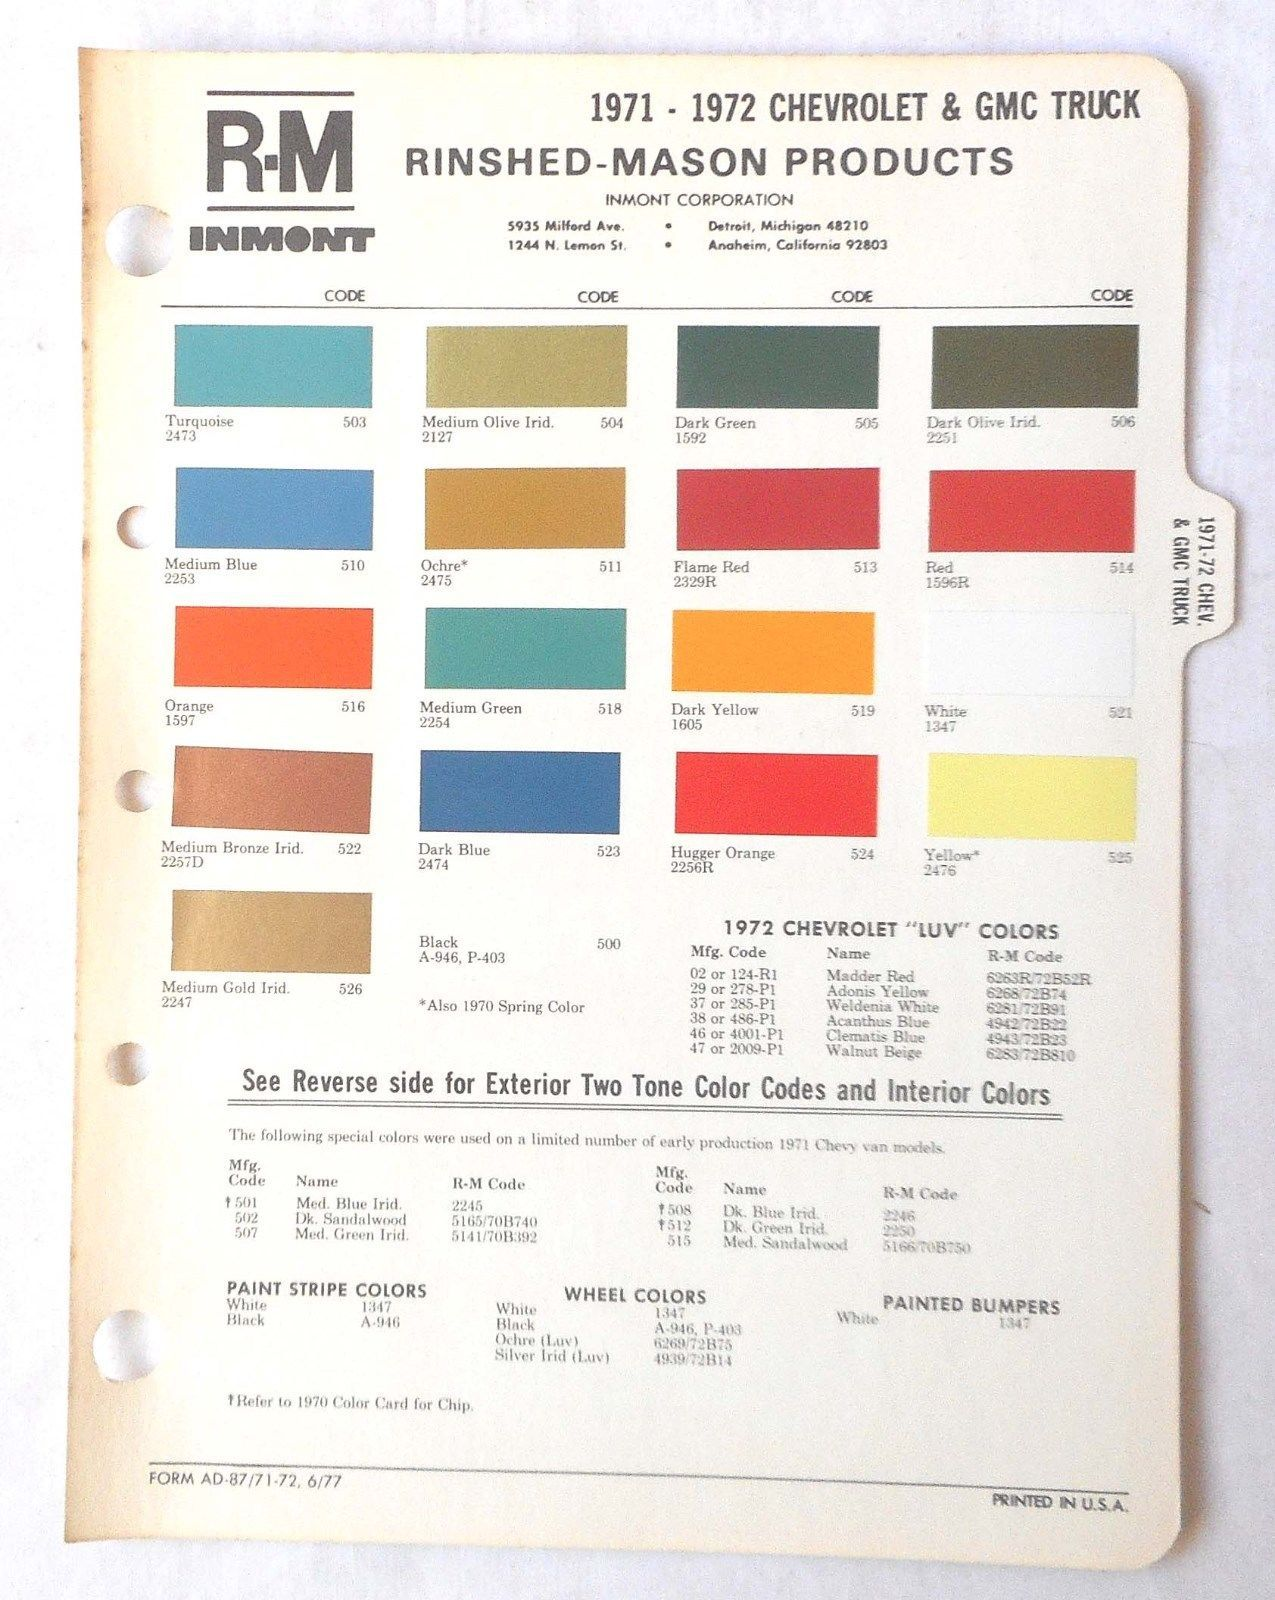 hight resolution of 1971 1972 chevrolet truck and gmc r m color paint chip chart all models ebay